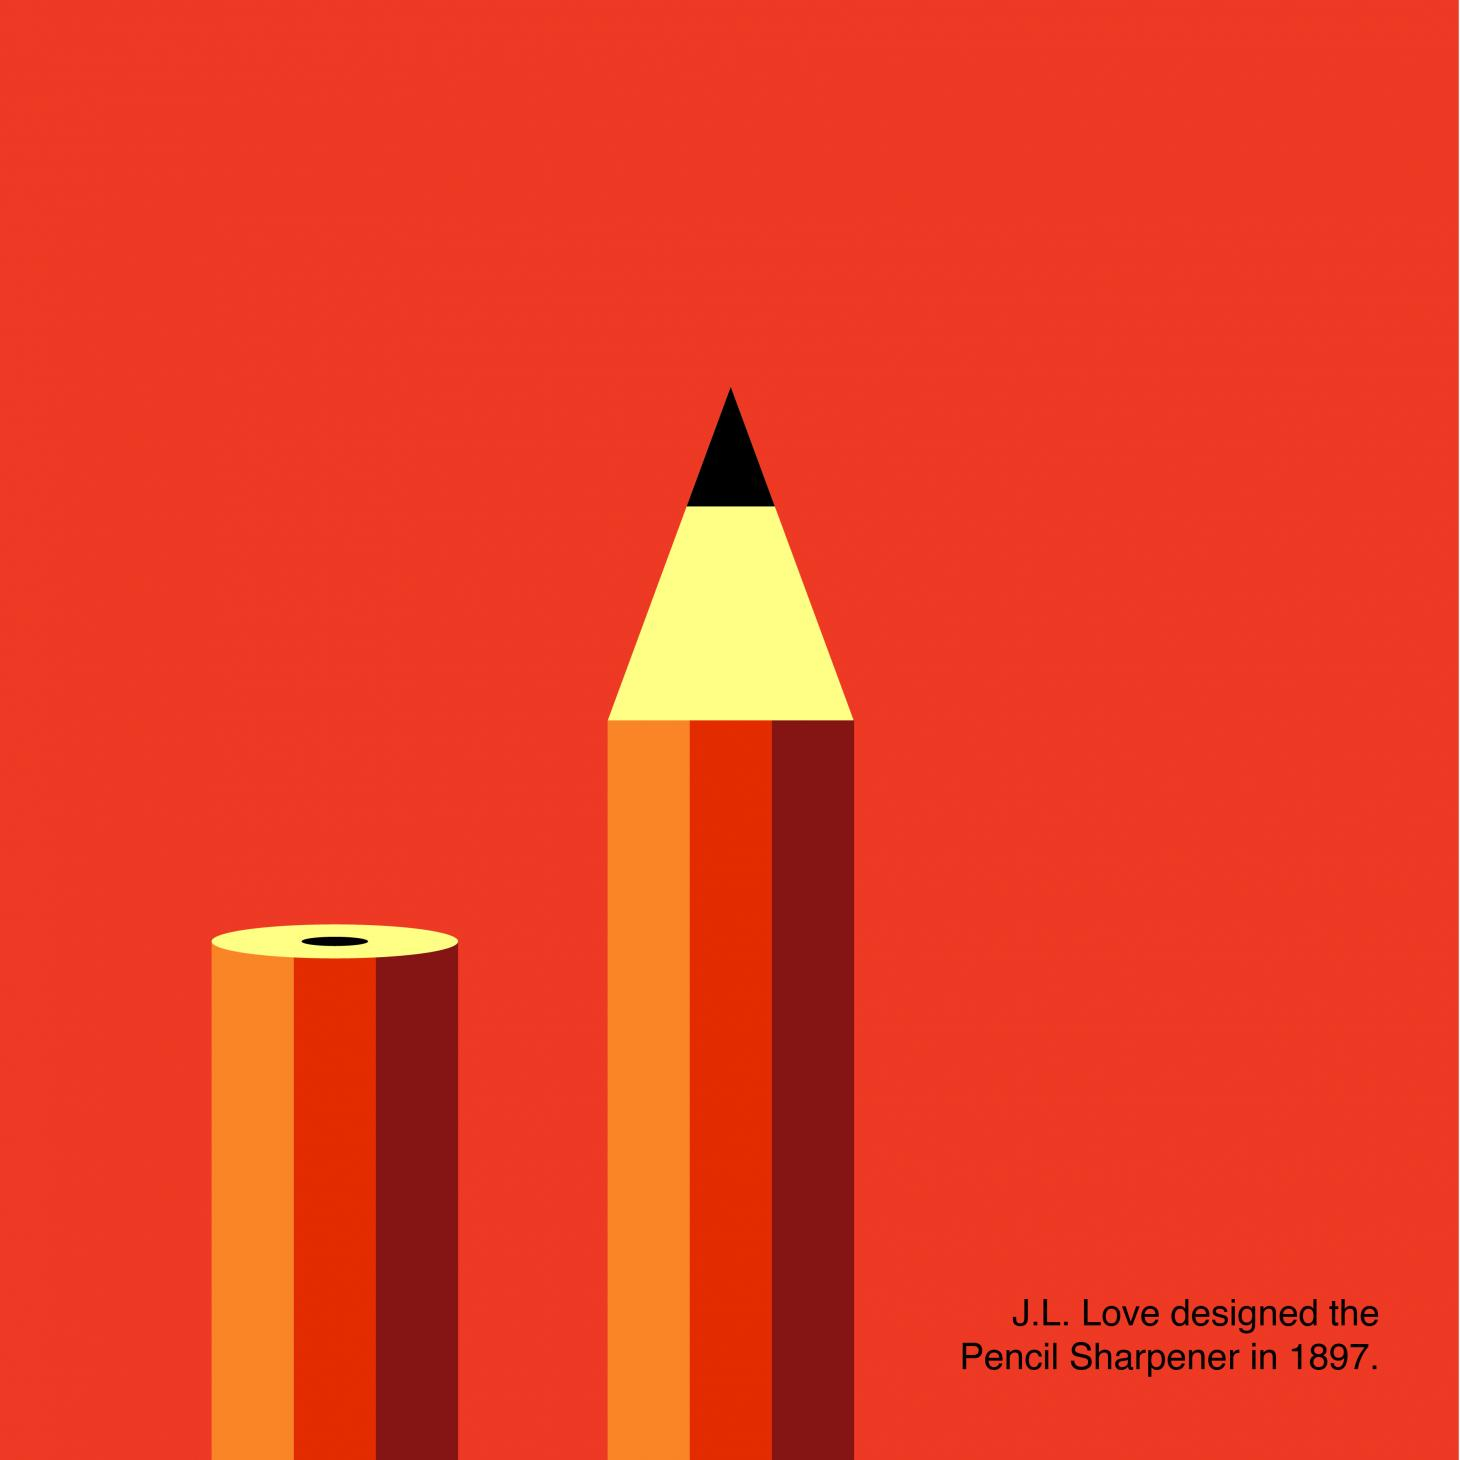 A graphic with a red background and stylized illustration of a pencil, with text explaining that the pencil sharpener was originally conceived by J. L. Love in 1897